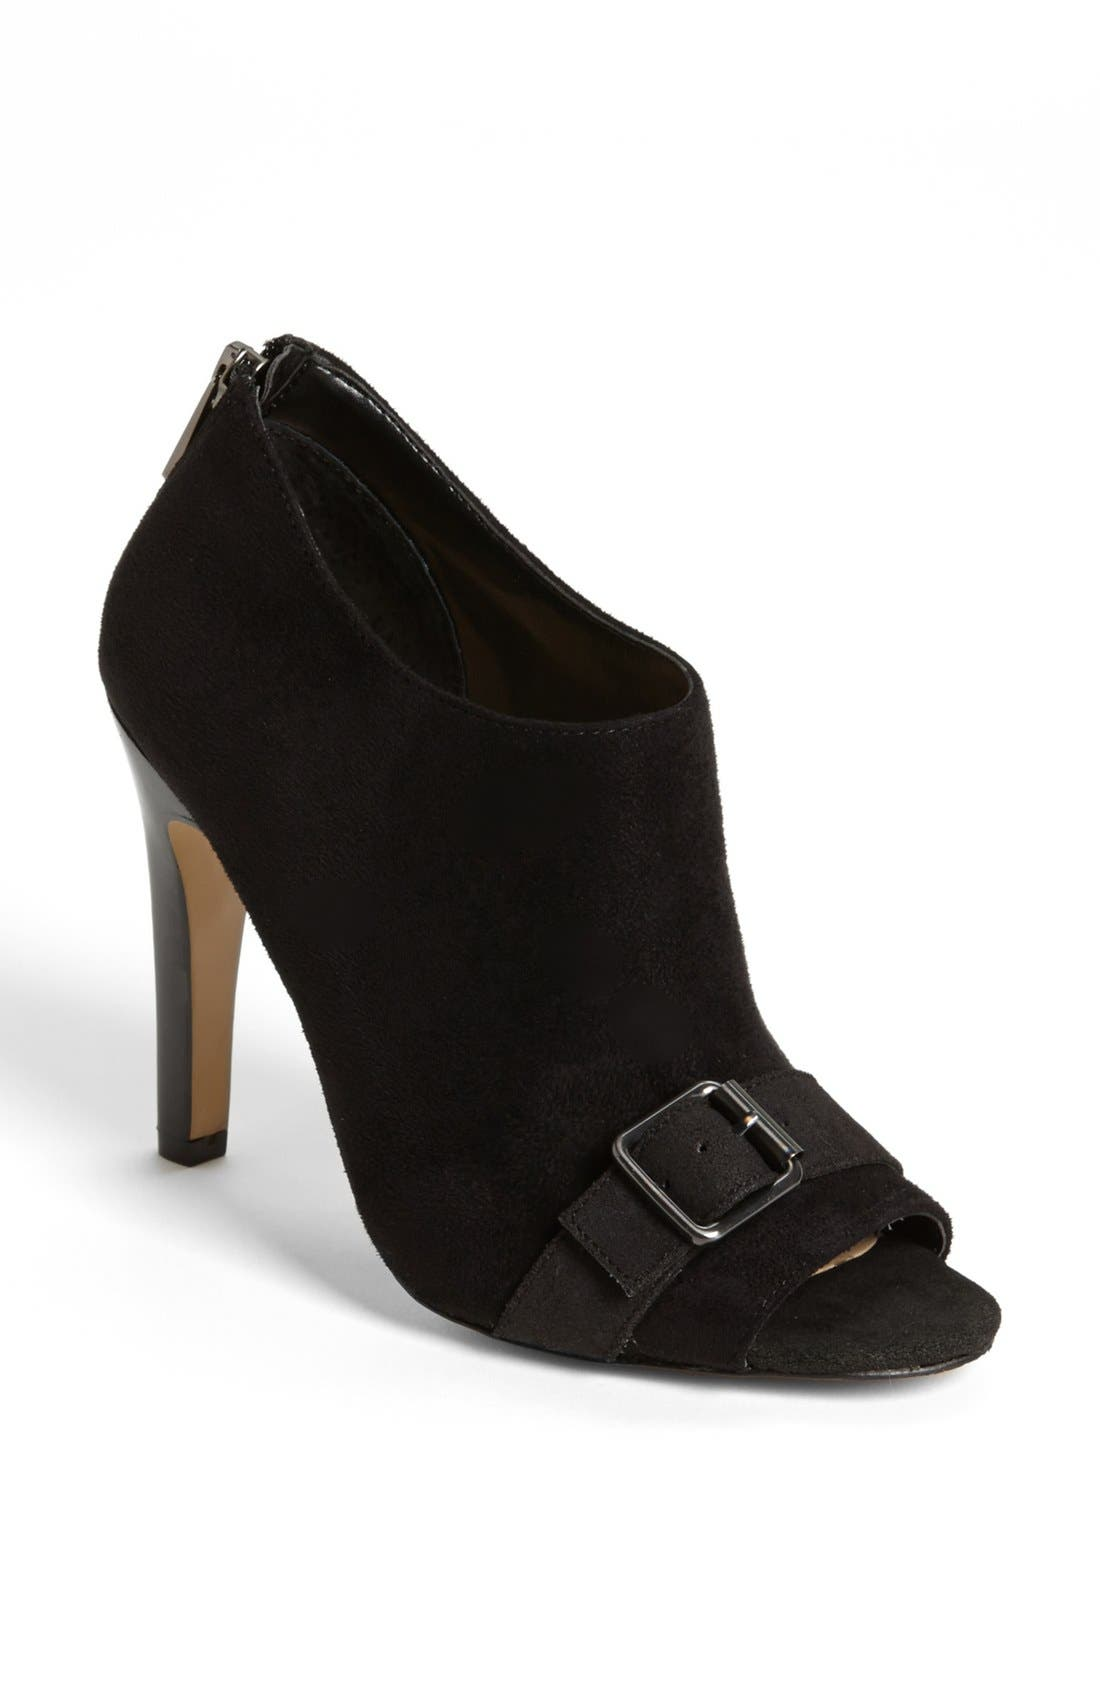 Main Image - Sole Society 'Chrissy' Bootie